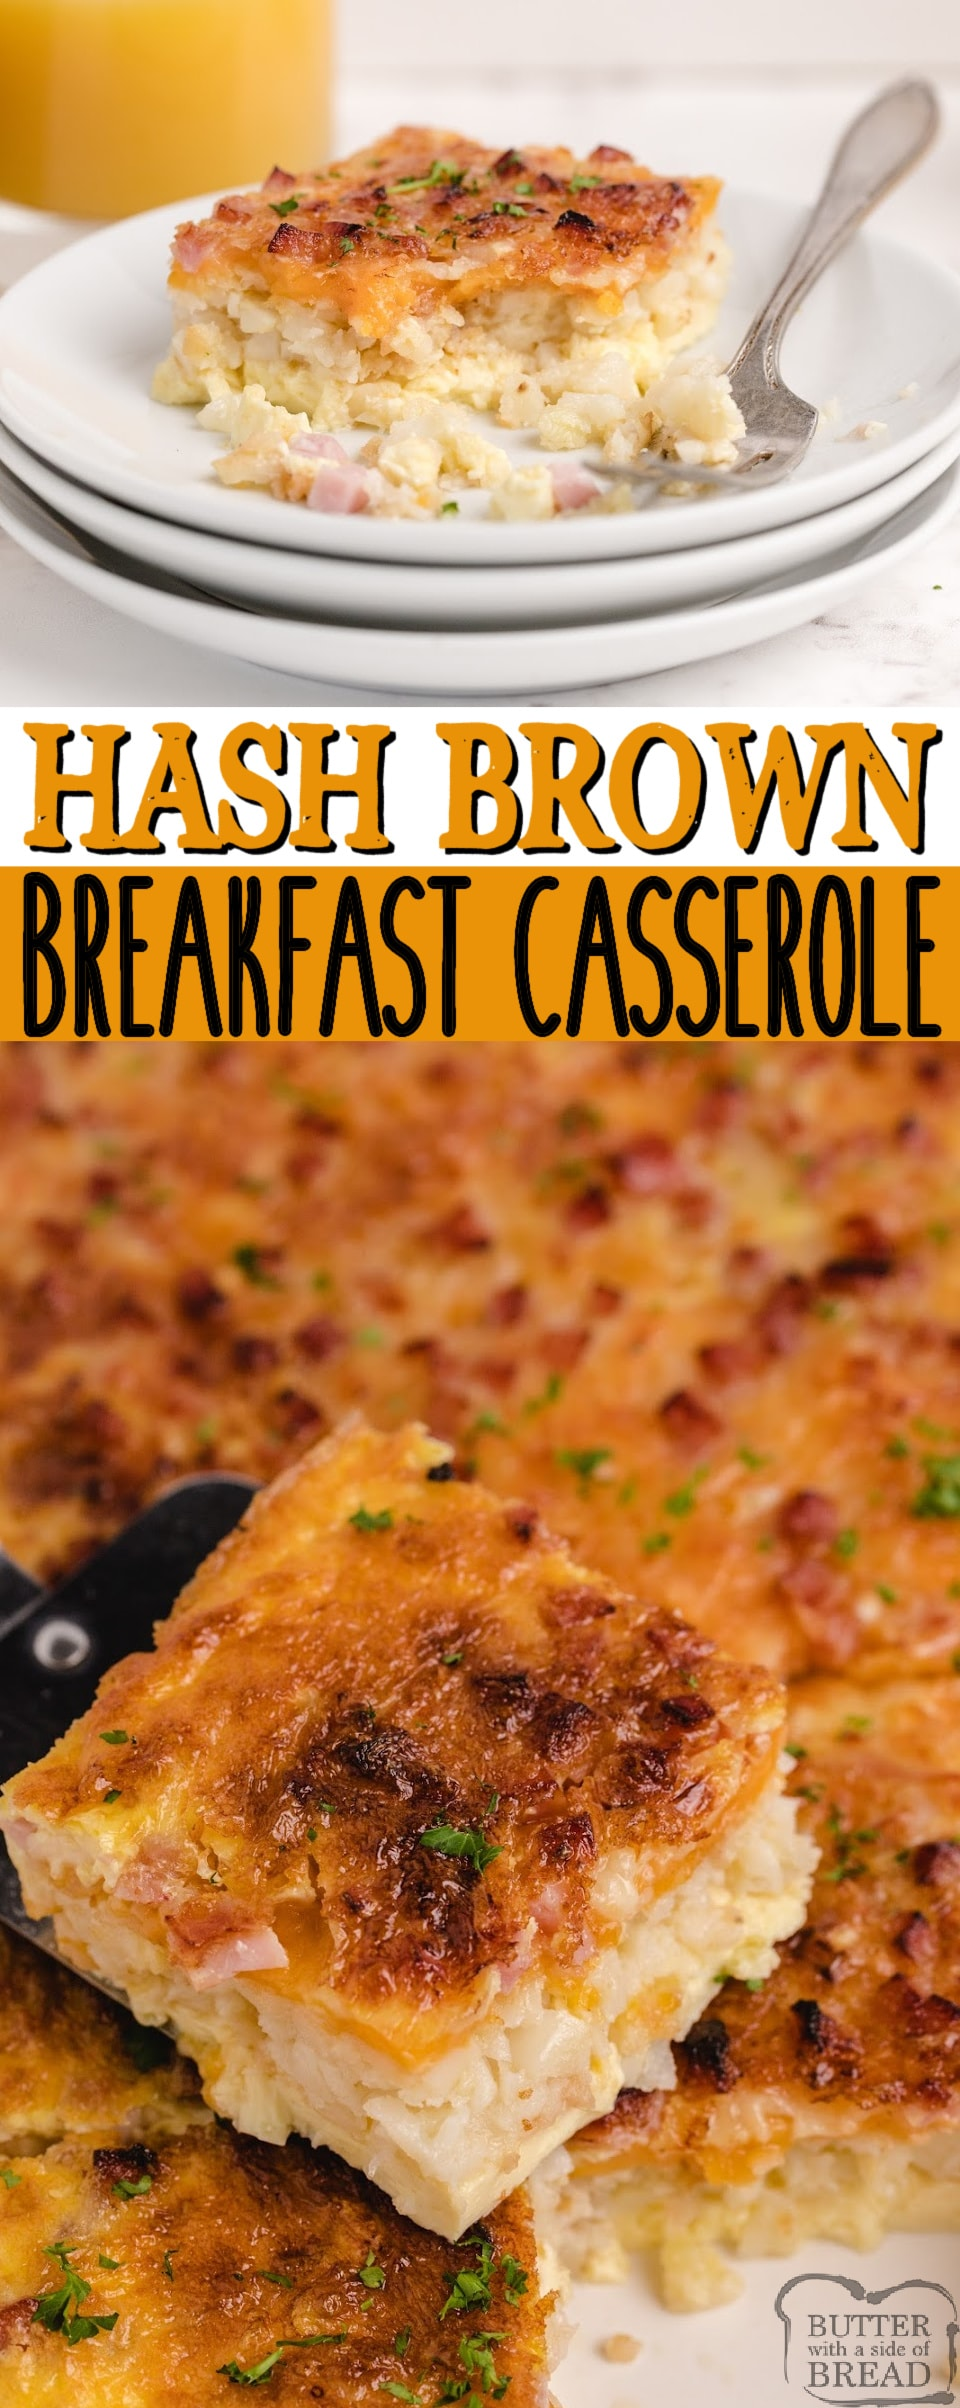 Hash Brown Breakfast Casserole made with a hash brown patty crust, ham, swiss cheese, cheddar cheese, eggs and milk. Only a few minutes of preparation for this easy breakfast casserole recipe!